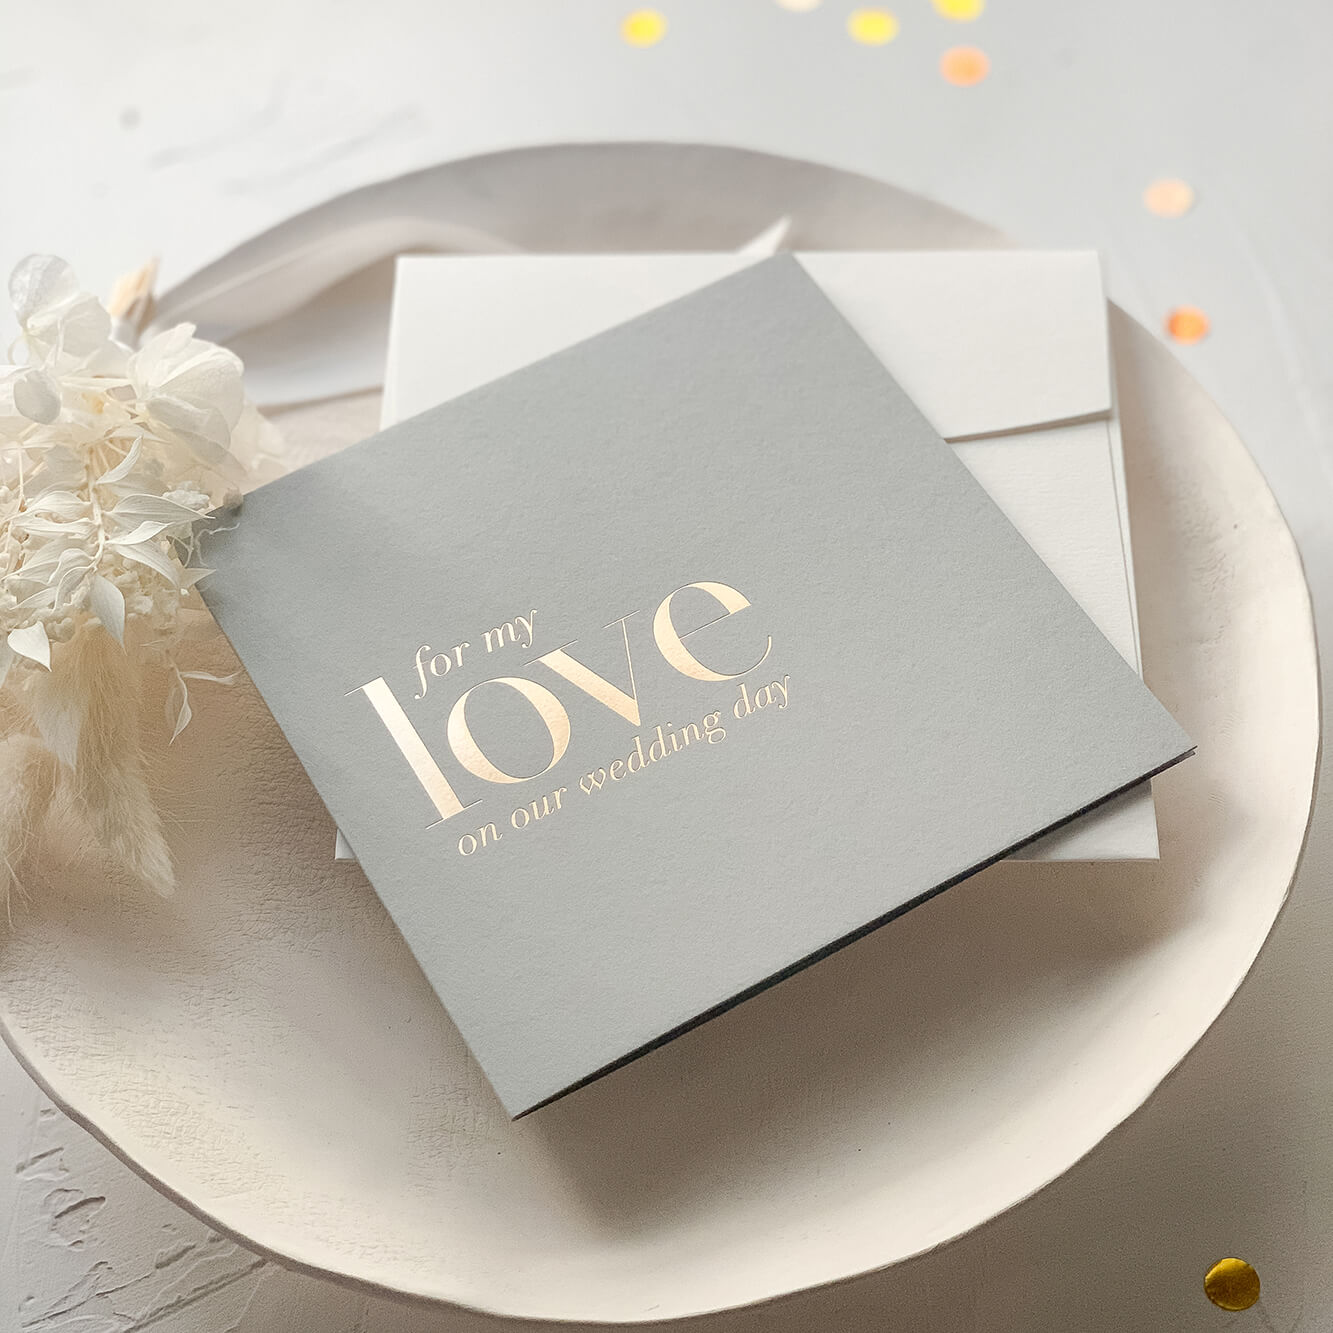 For My Love Card by Ooh-Aah Invitations | Lala Design Perth WA